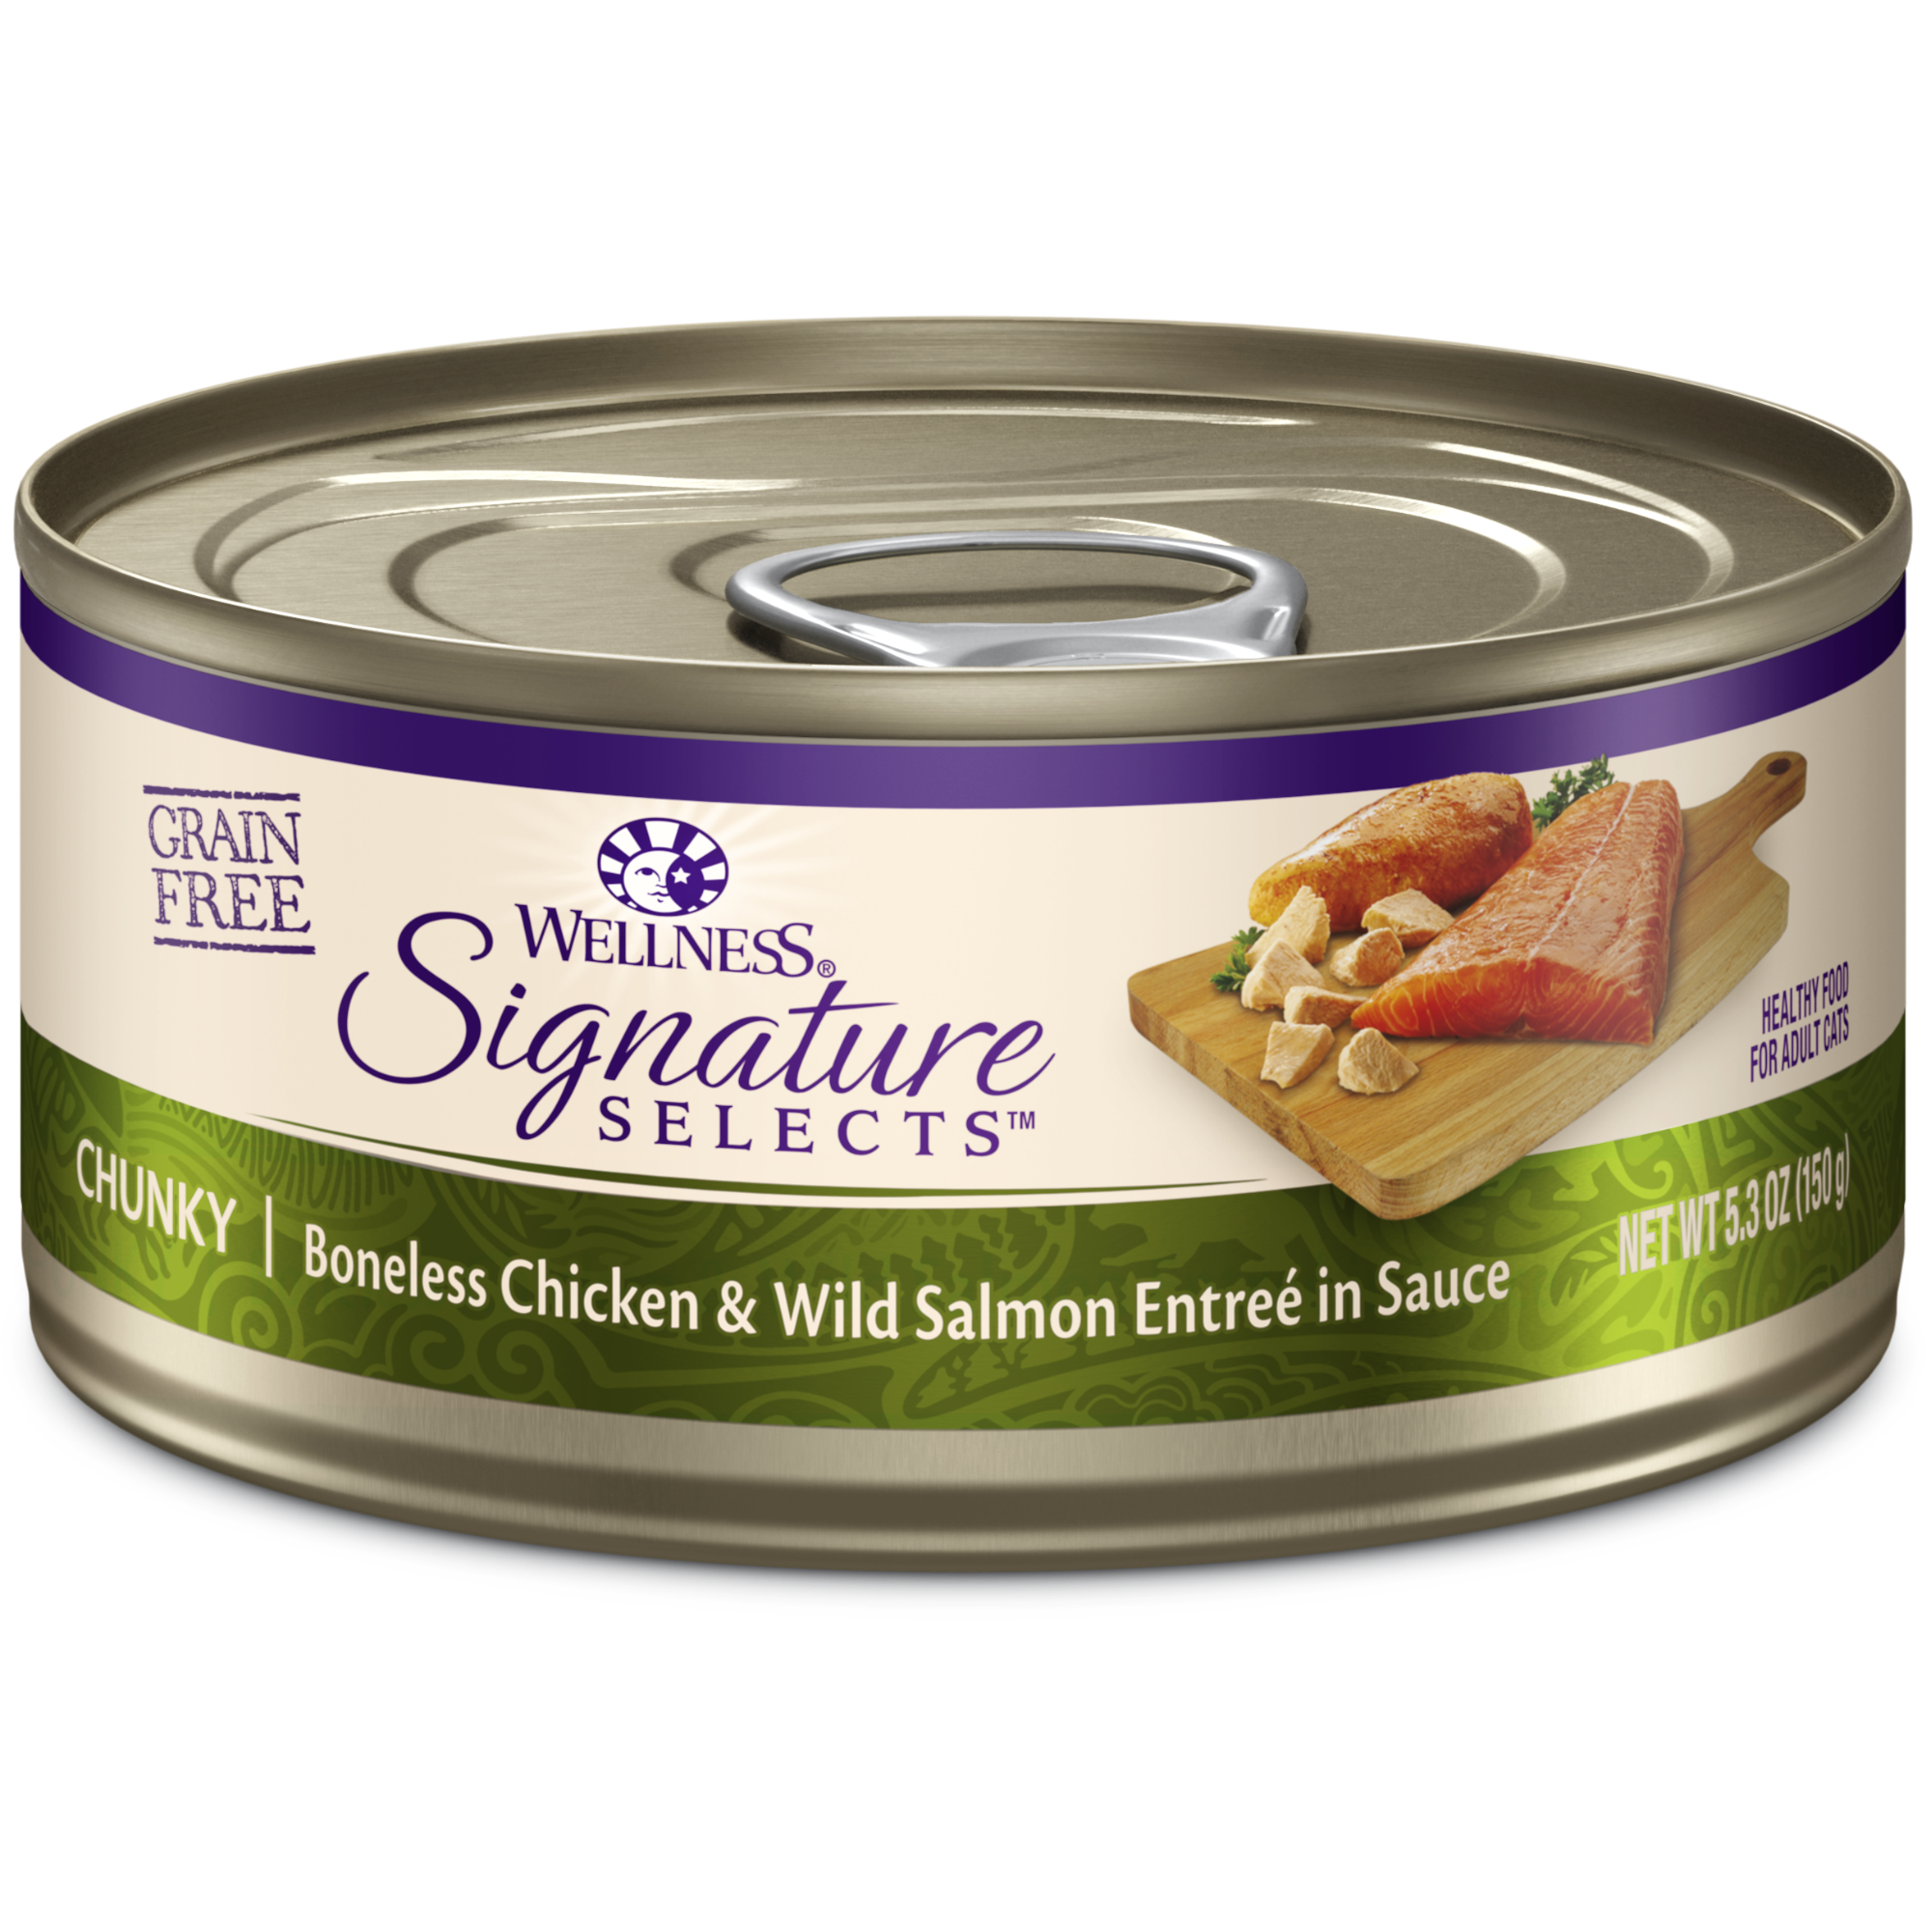 Signature Selects Chunky Chicken Wild Salmon